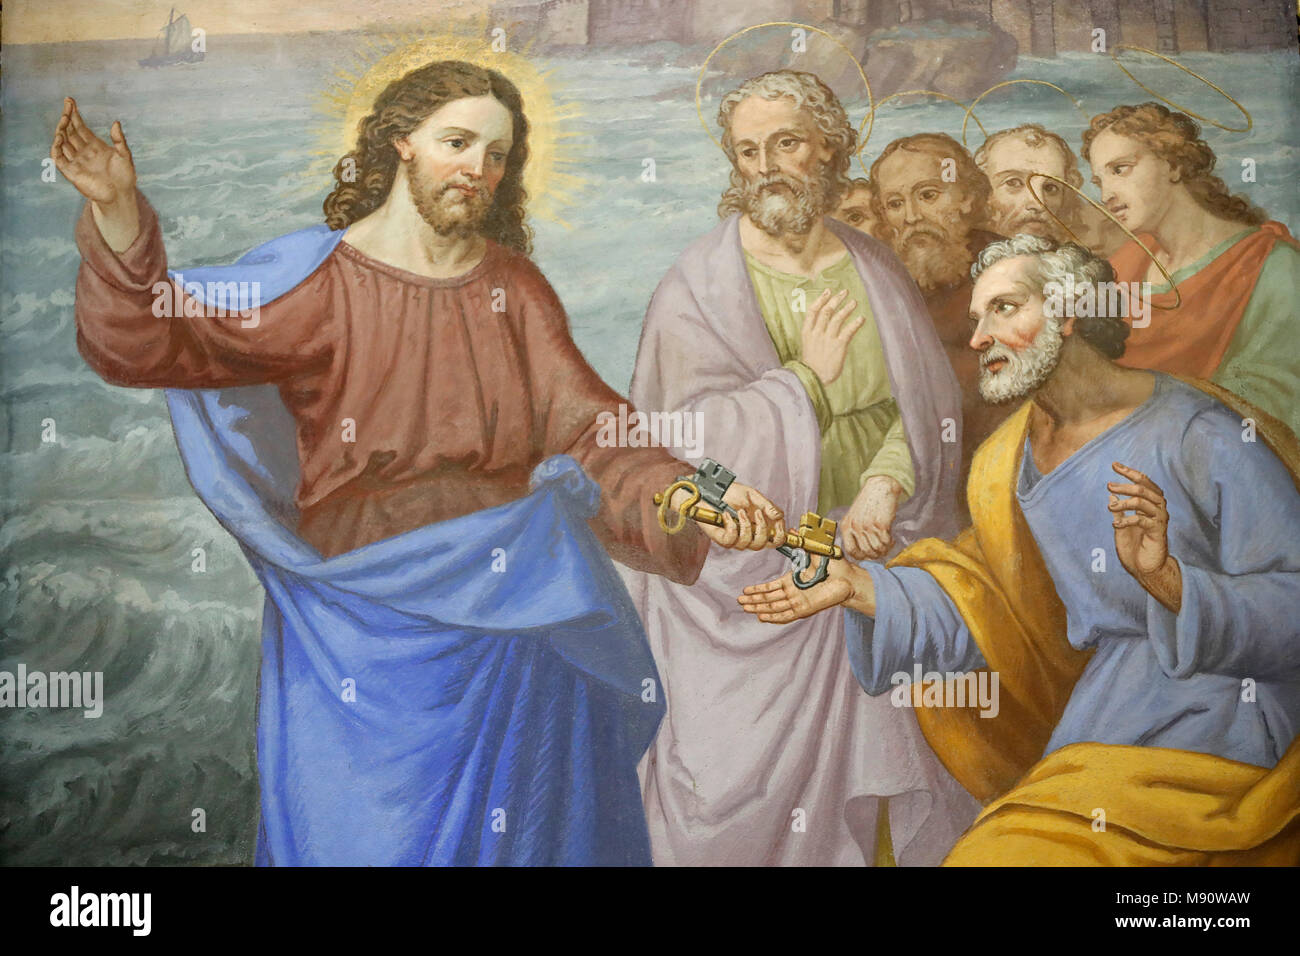 Saint-Grat church. Painting. Christ Handing the Keys to St Peter. Valgrisenche. Italy. - Stock Image